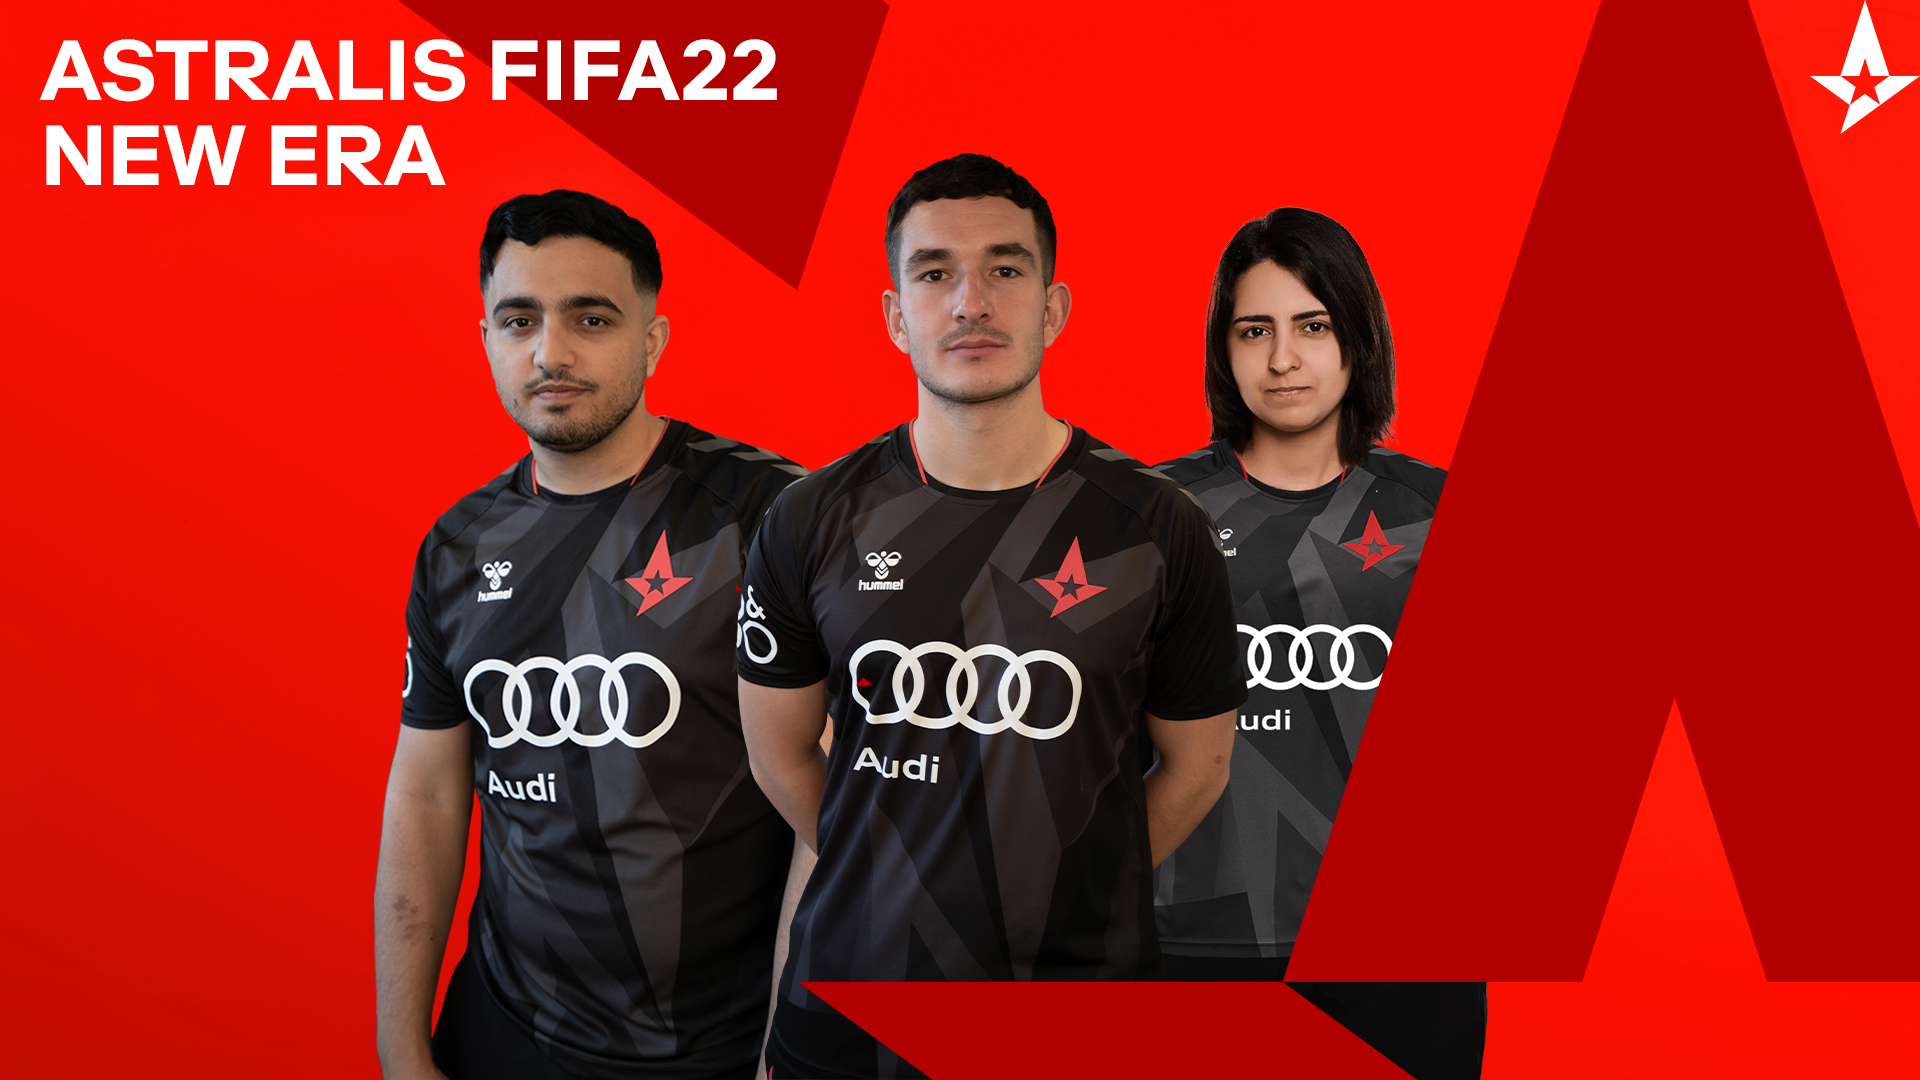 Astralis FIFA Presents New Set-Up With Big Ambitions